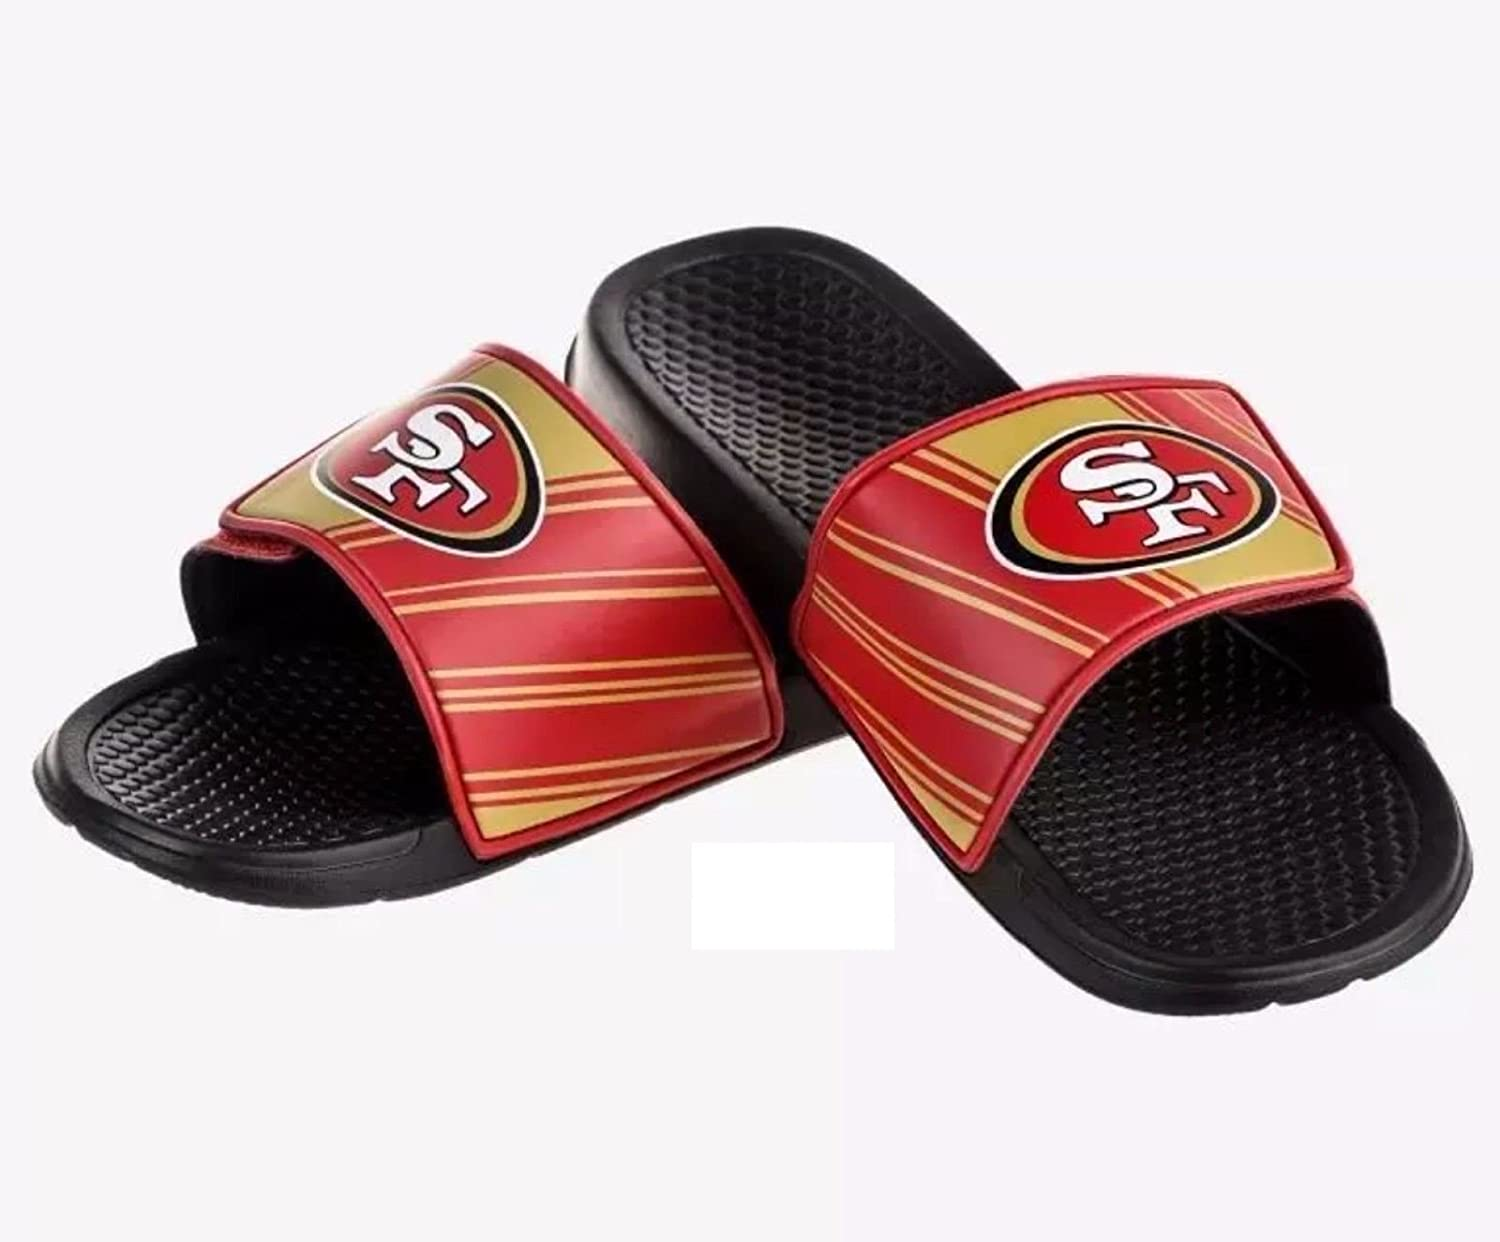 Amazon.com : NFL Football Mens Legacy Sport Shower Slide Flip Flop Sandals  - Pick Team ? : Sports & Outdoors